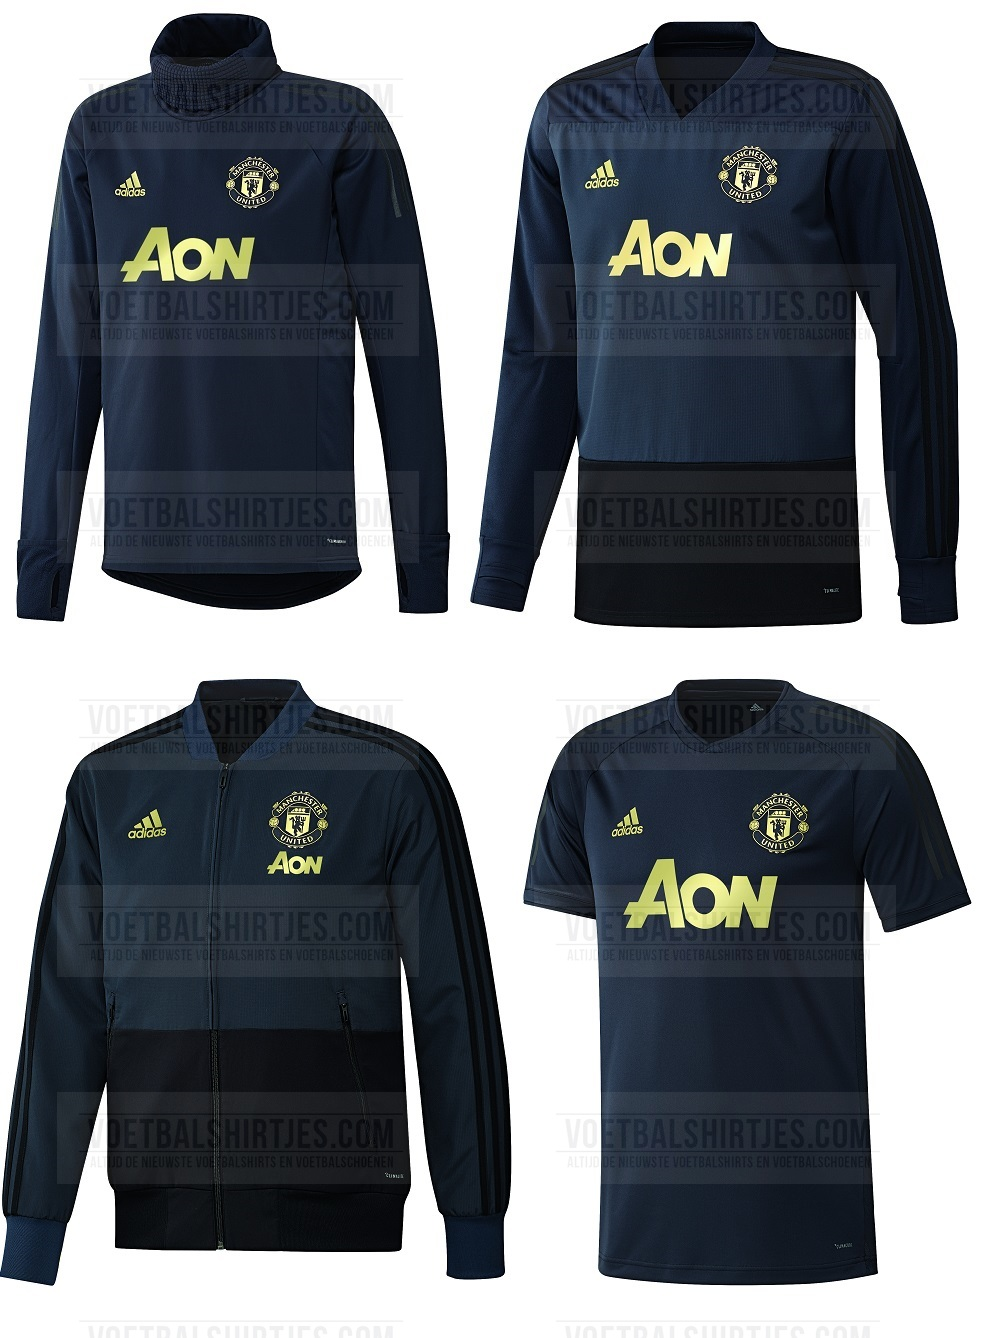 MUFC 18-19 Champions League collection